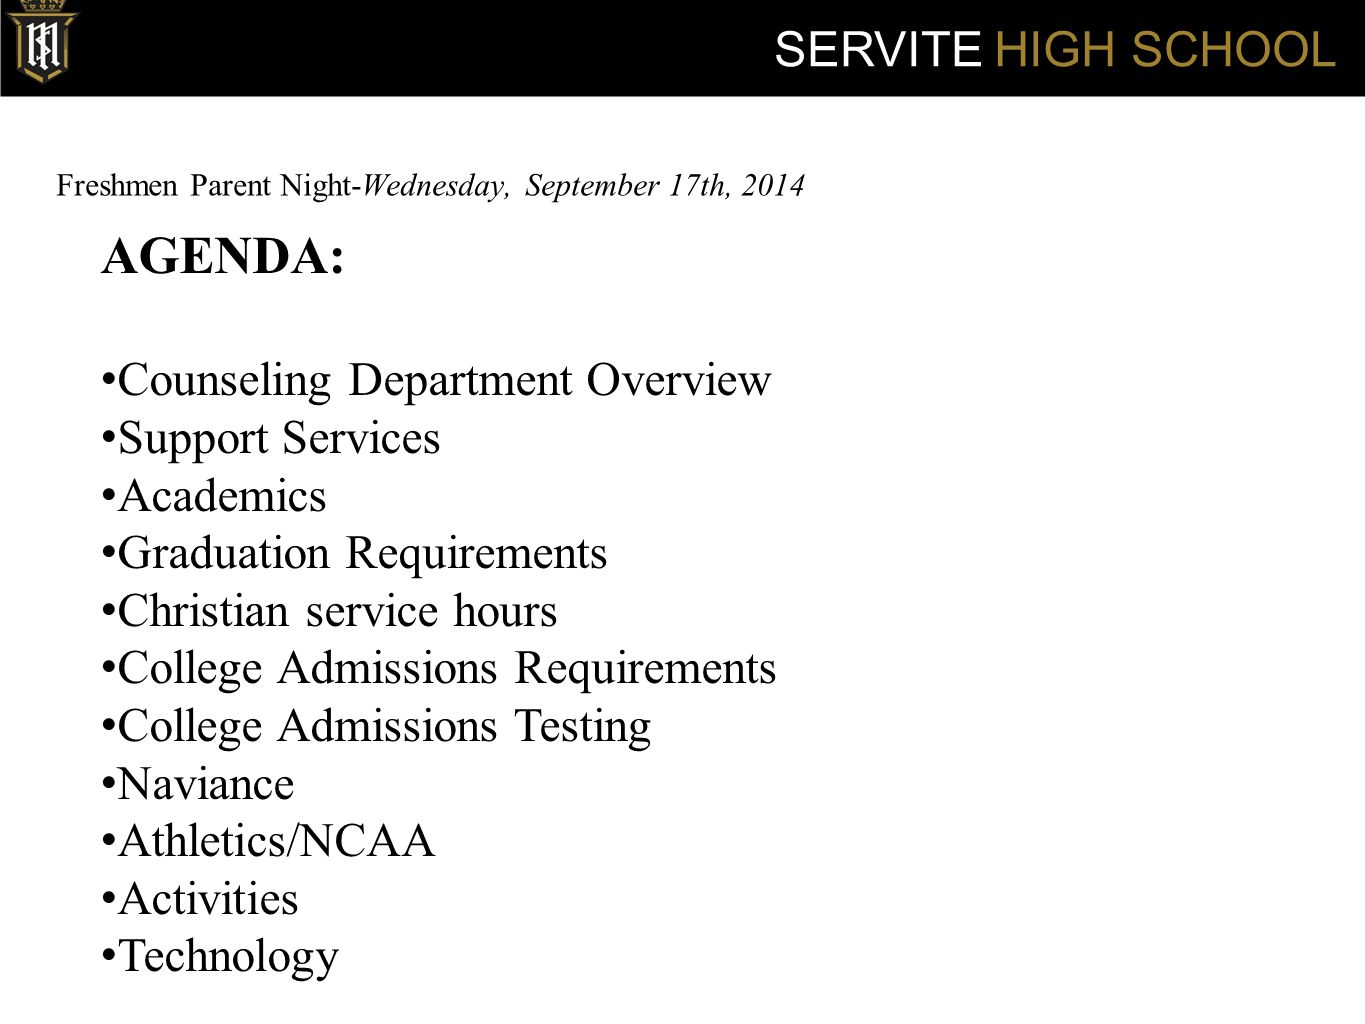 Freshmen Parent Night-Wednesday, September 17th, 2014 SERVITE HIGH SCHOOL AGENDA: Counseling Department Overview Support Services Academics Graduation Requirements Christian service hours College Admissions Requirements College Admissions Testing Naviance Athletics/NCAA Activities Technology